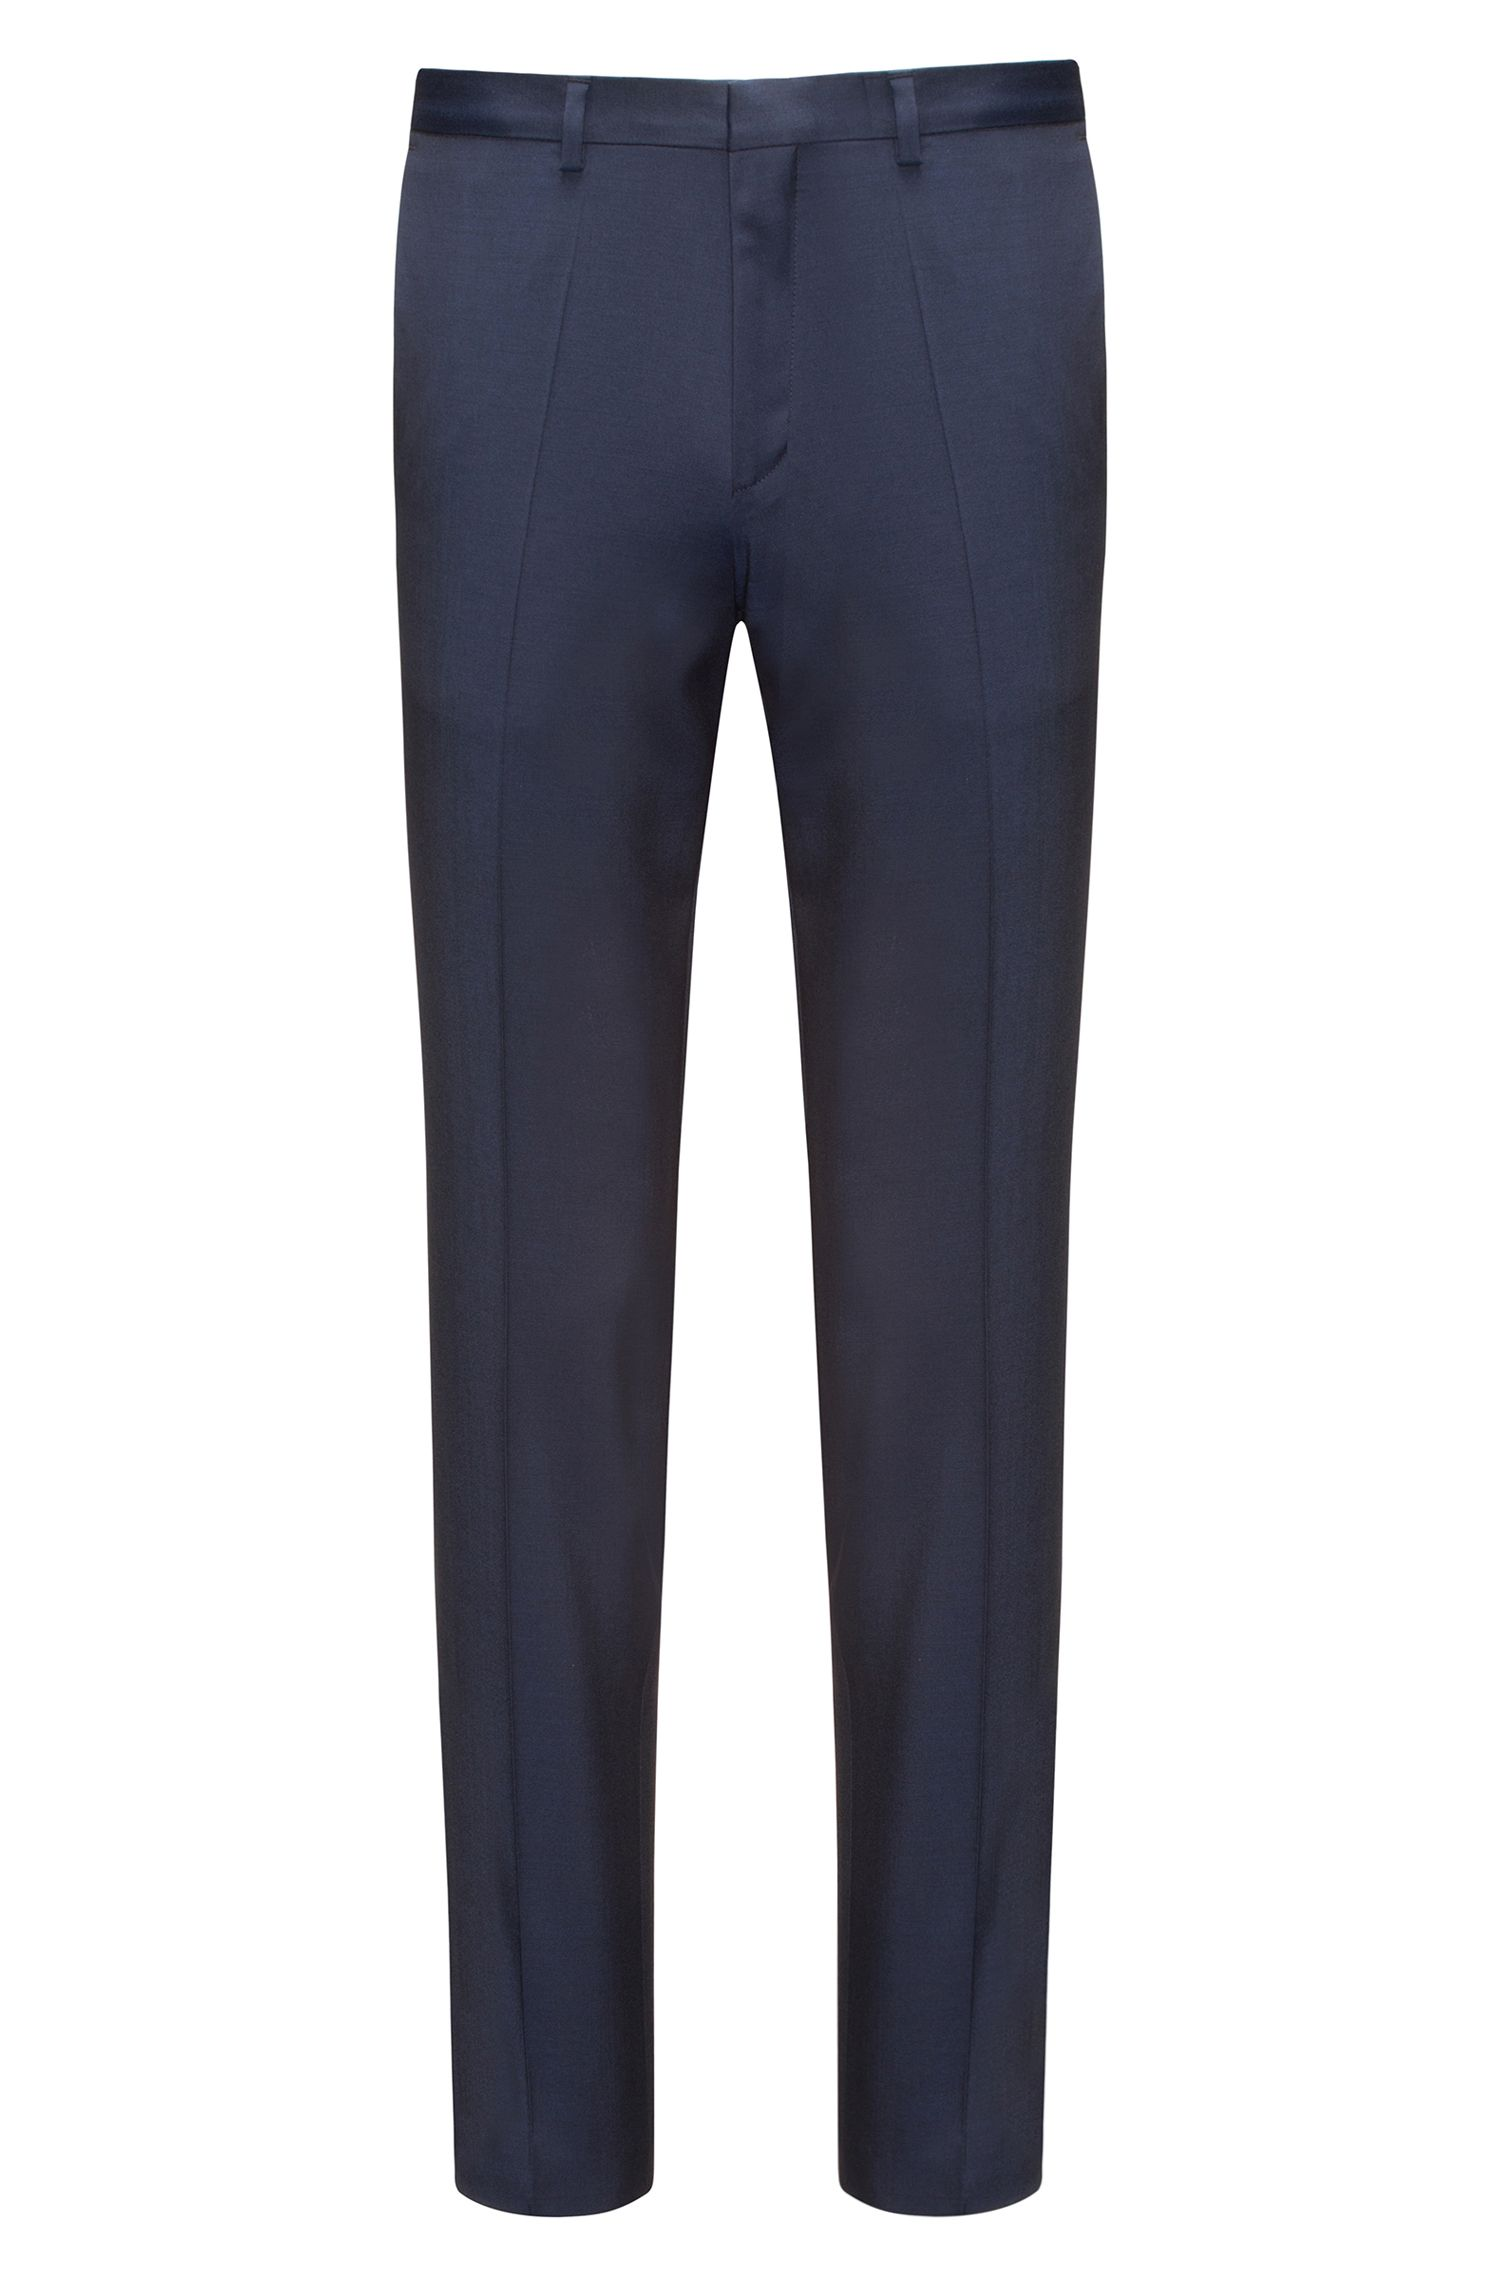 Pantalon Extra Slim Fit en twill de laine vierge naturellement extensible